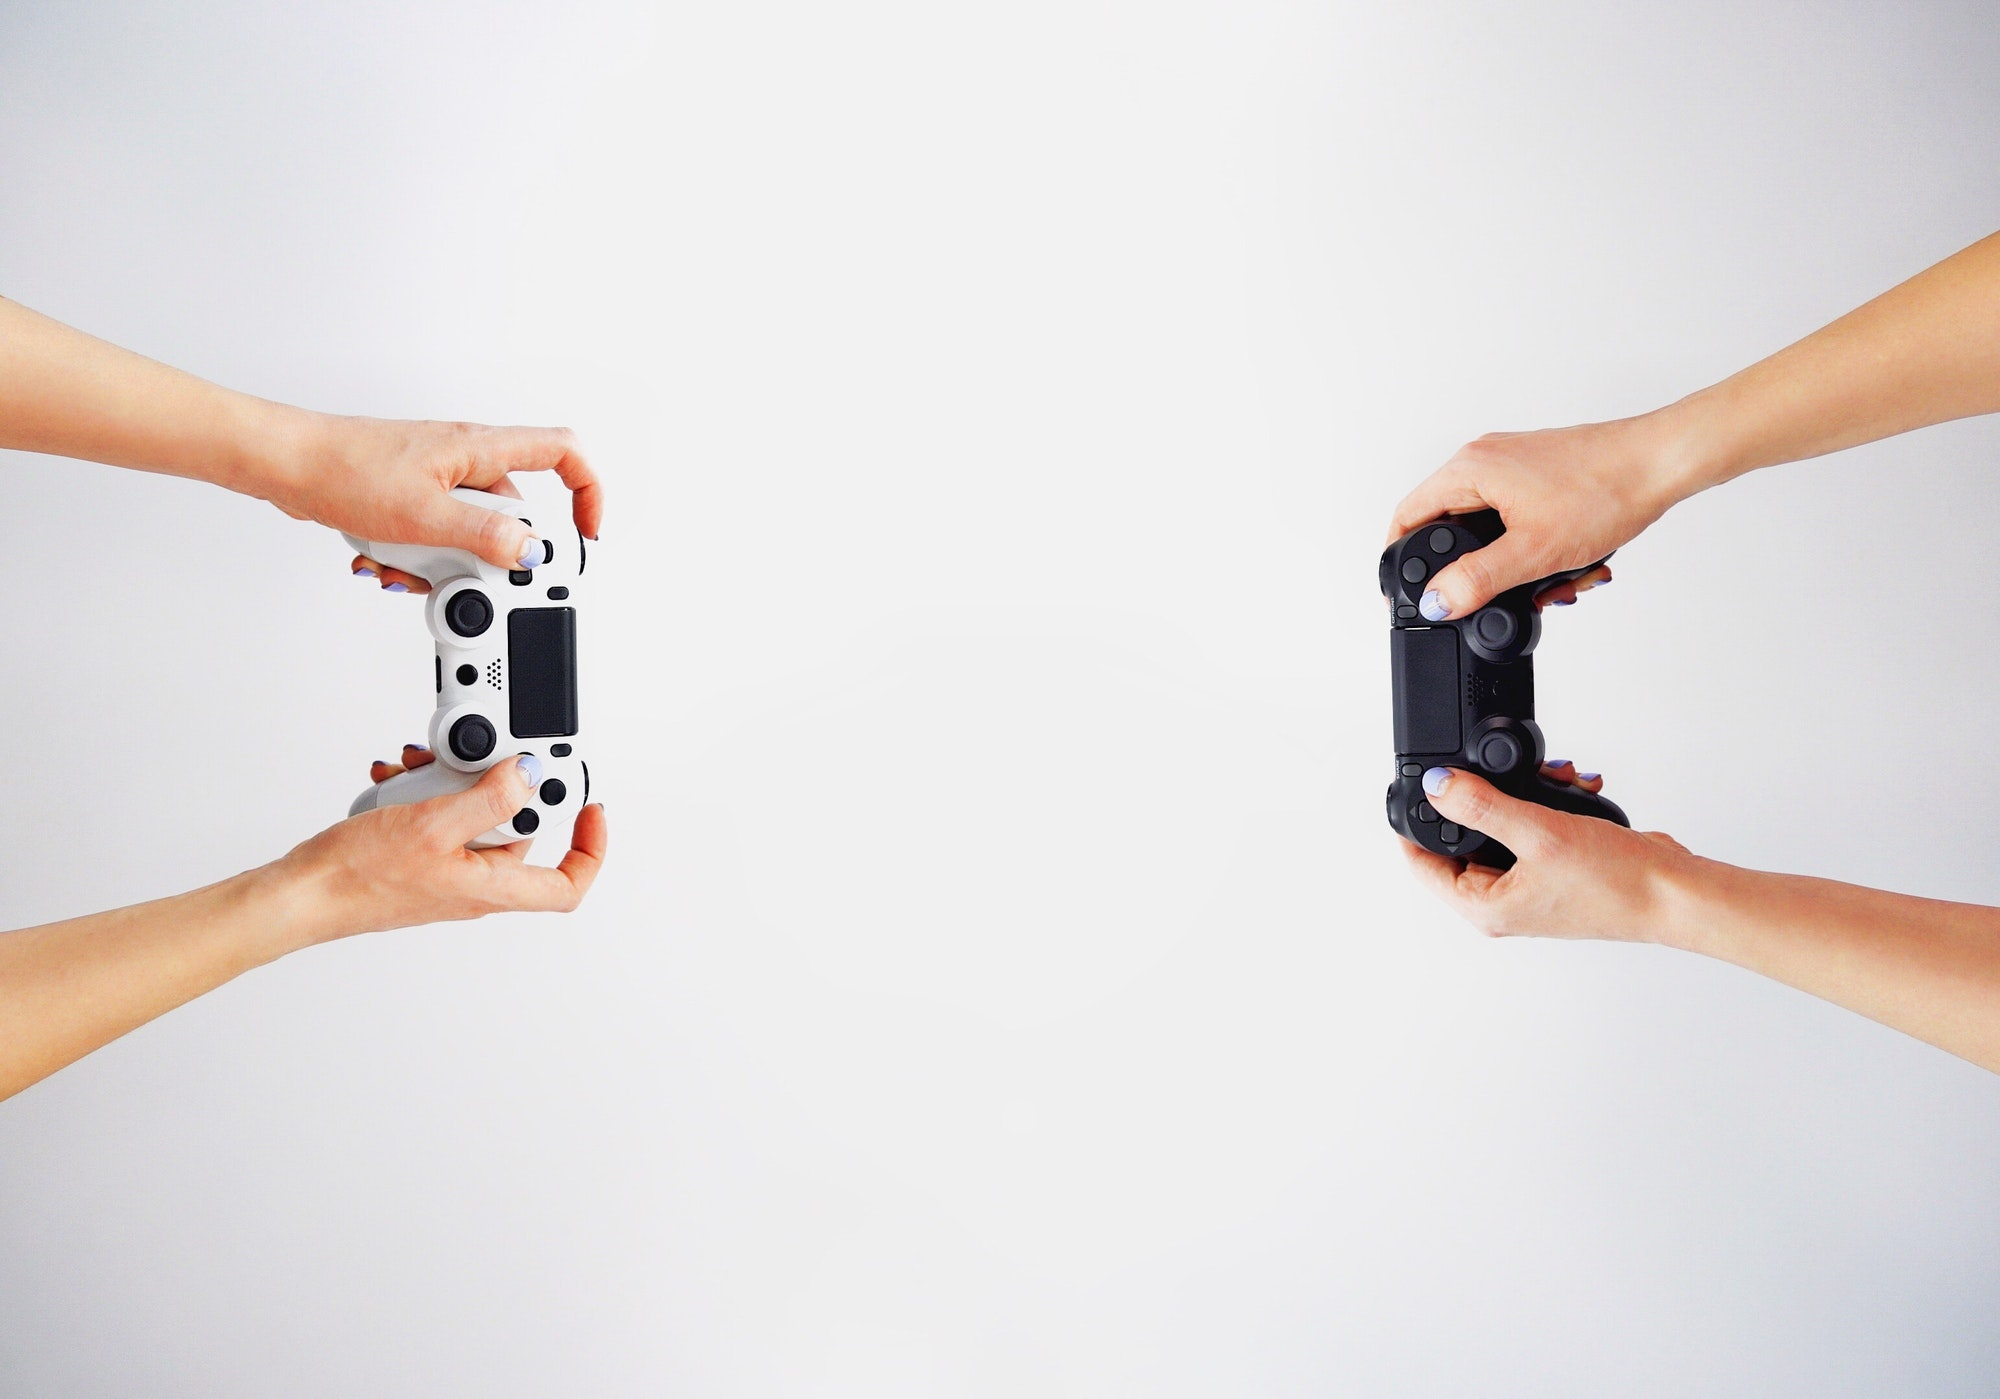 Gamepad in hand. Video games. Gamer. Game contest